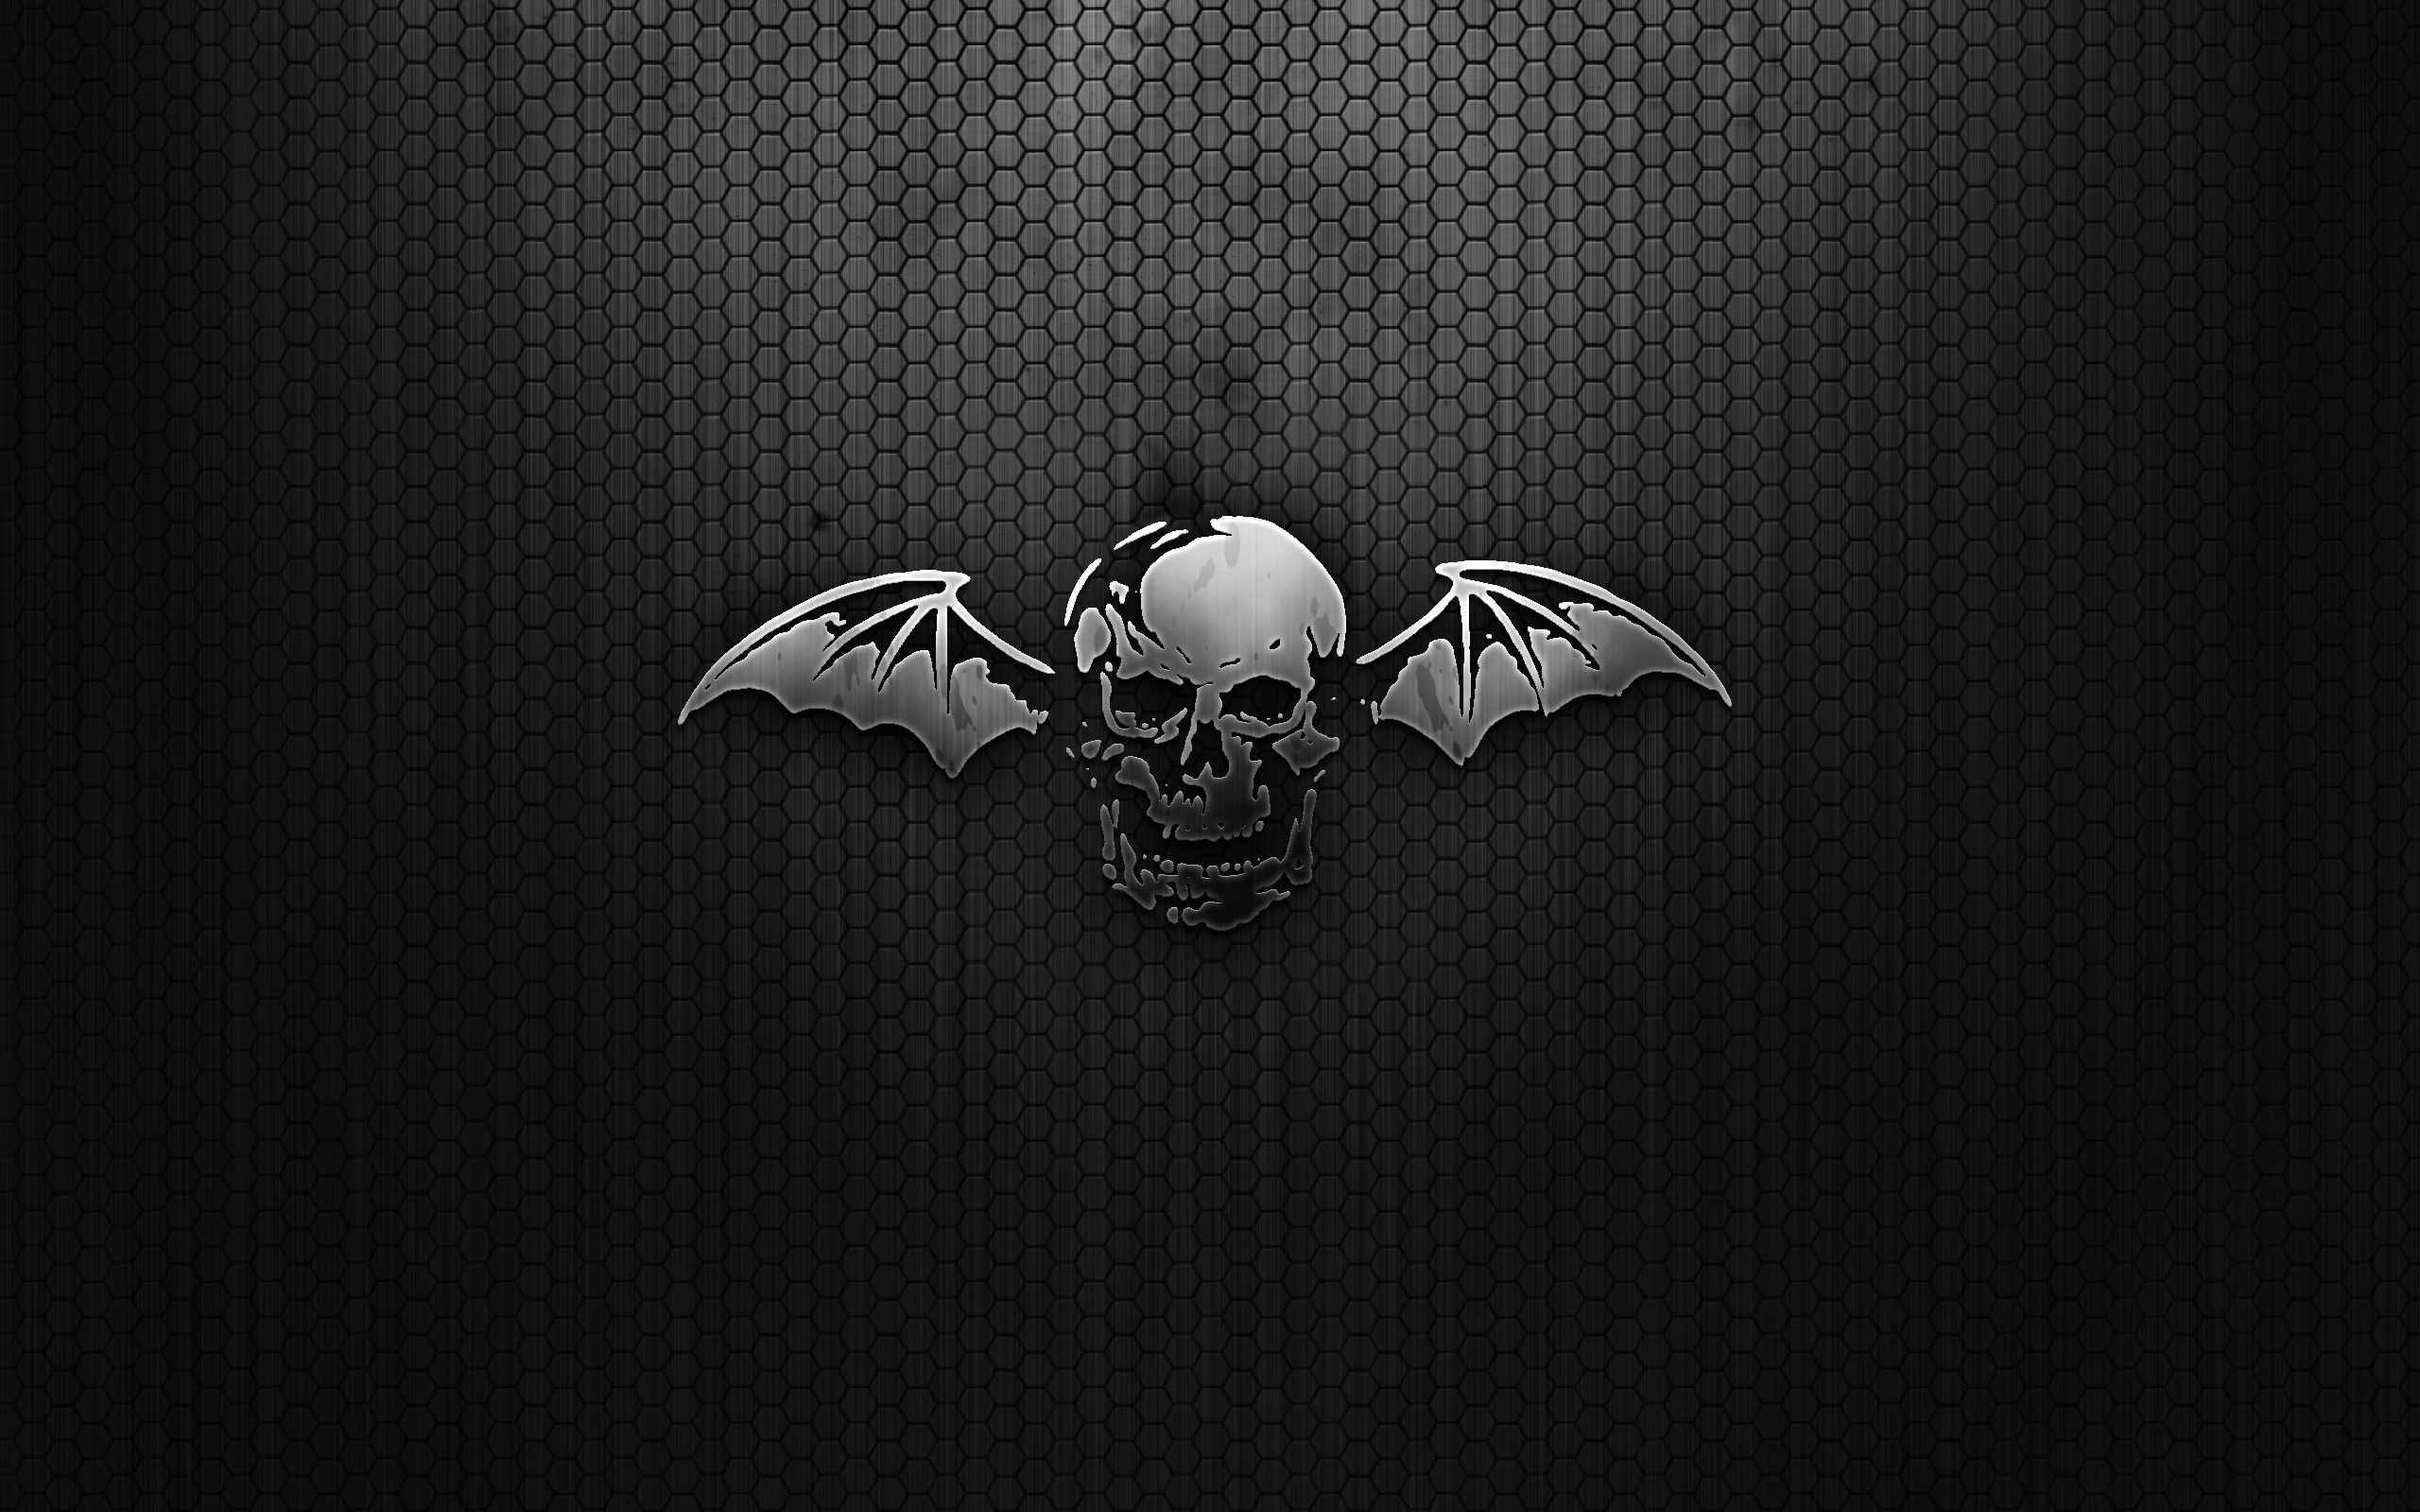 Avenged sevenfold logo 2560x1600